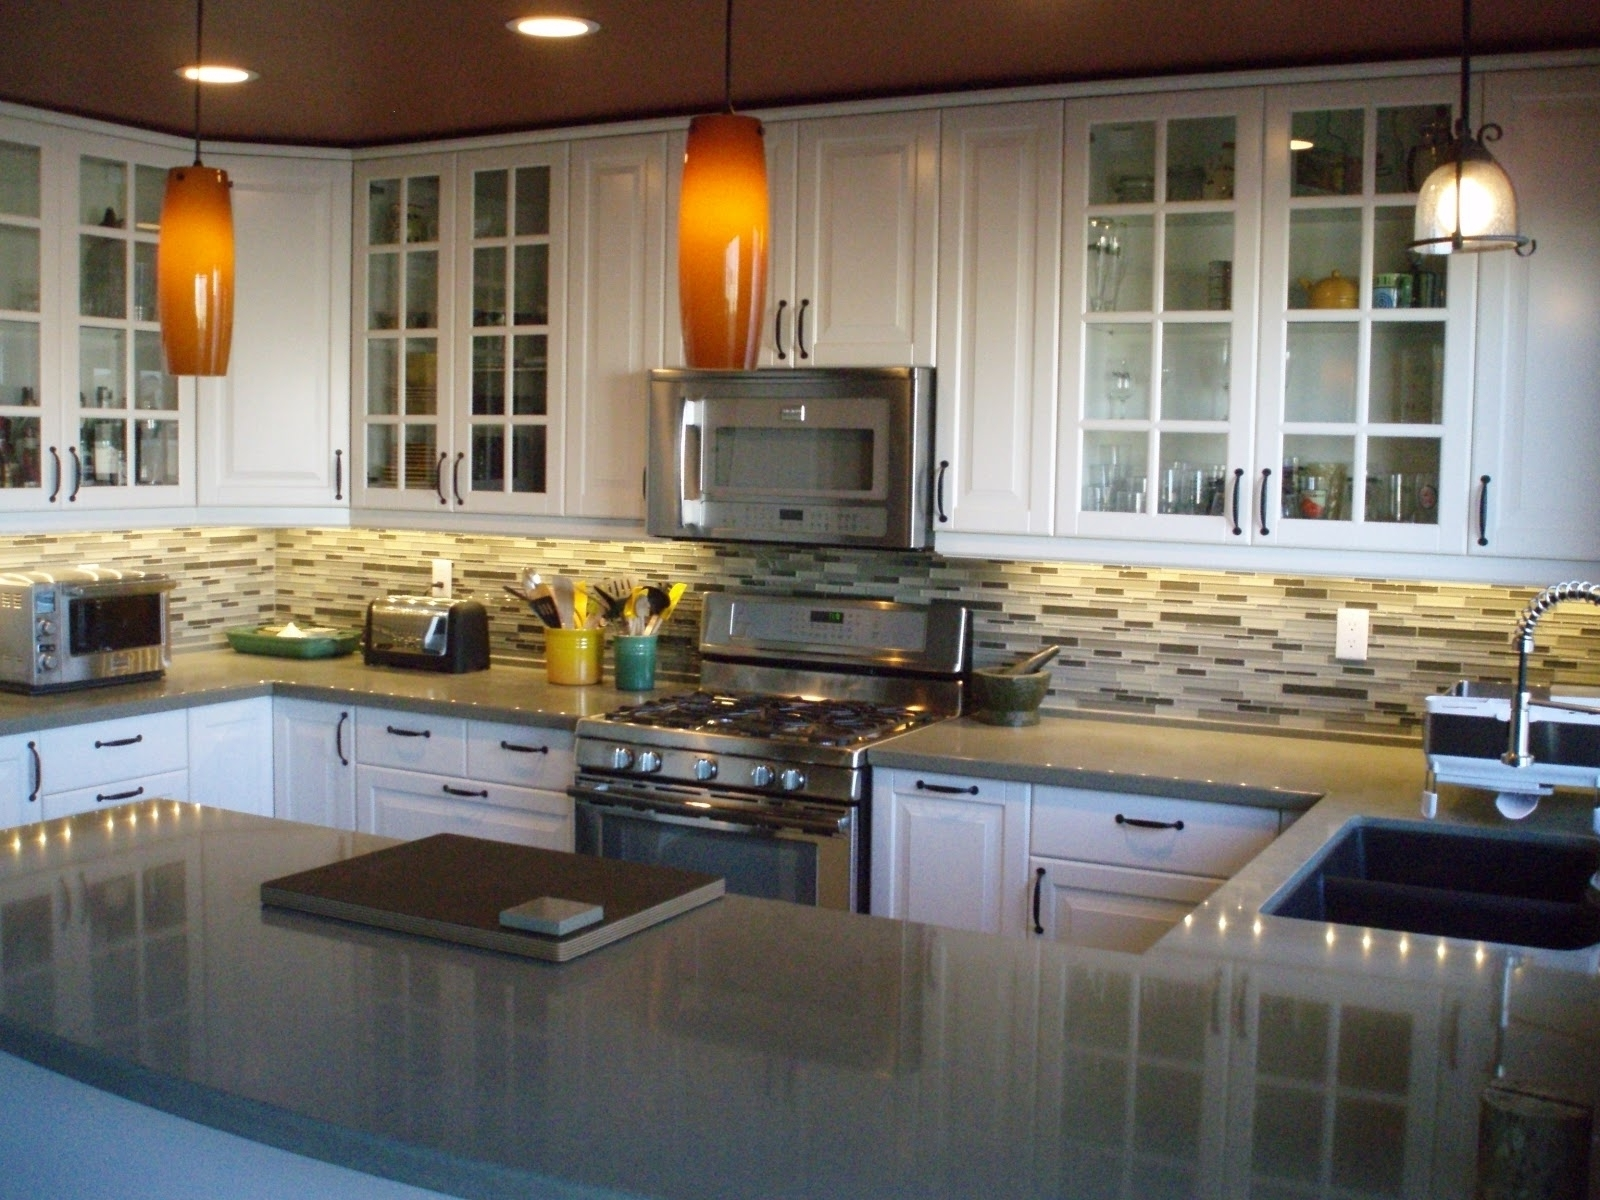 Consumer Reports Kitchen Cabinets 2010